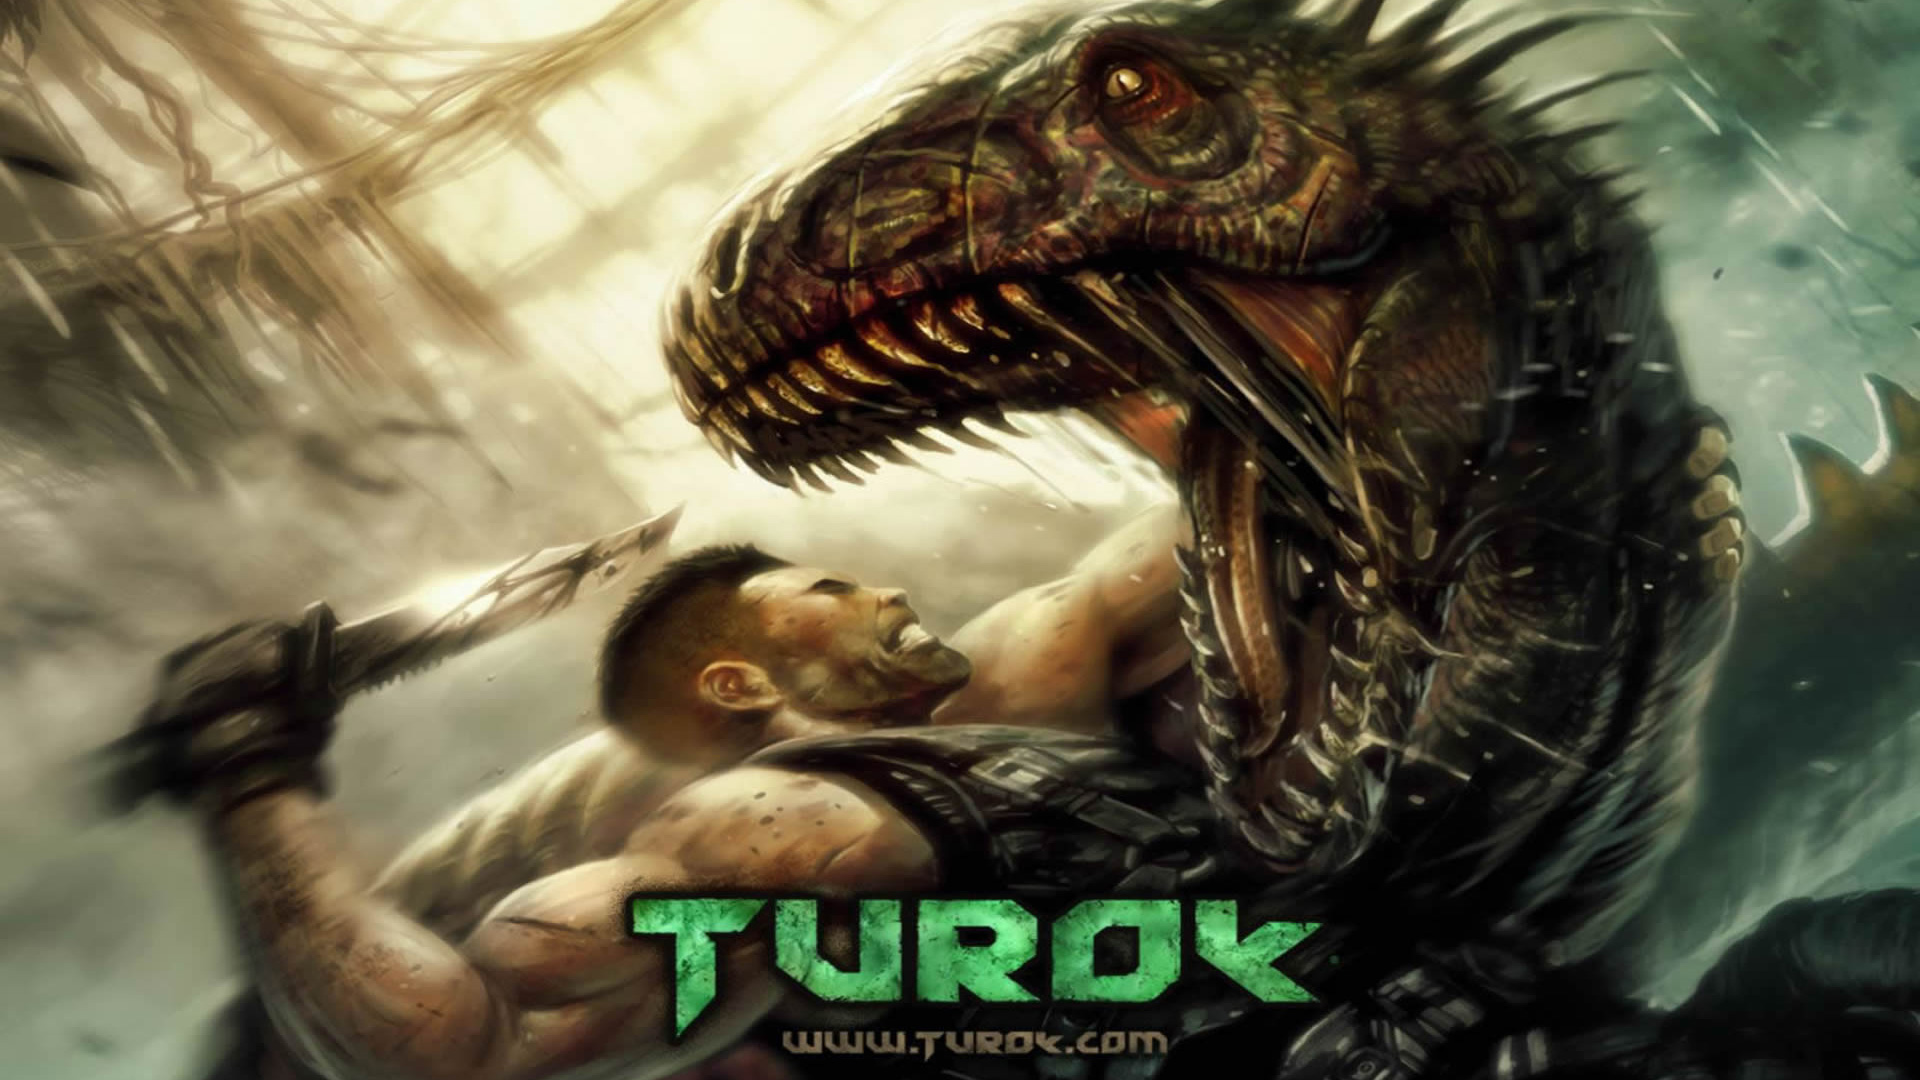 Turok Wallpaper in 1920x1080